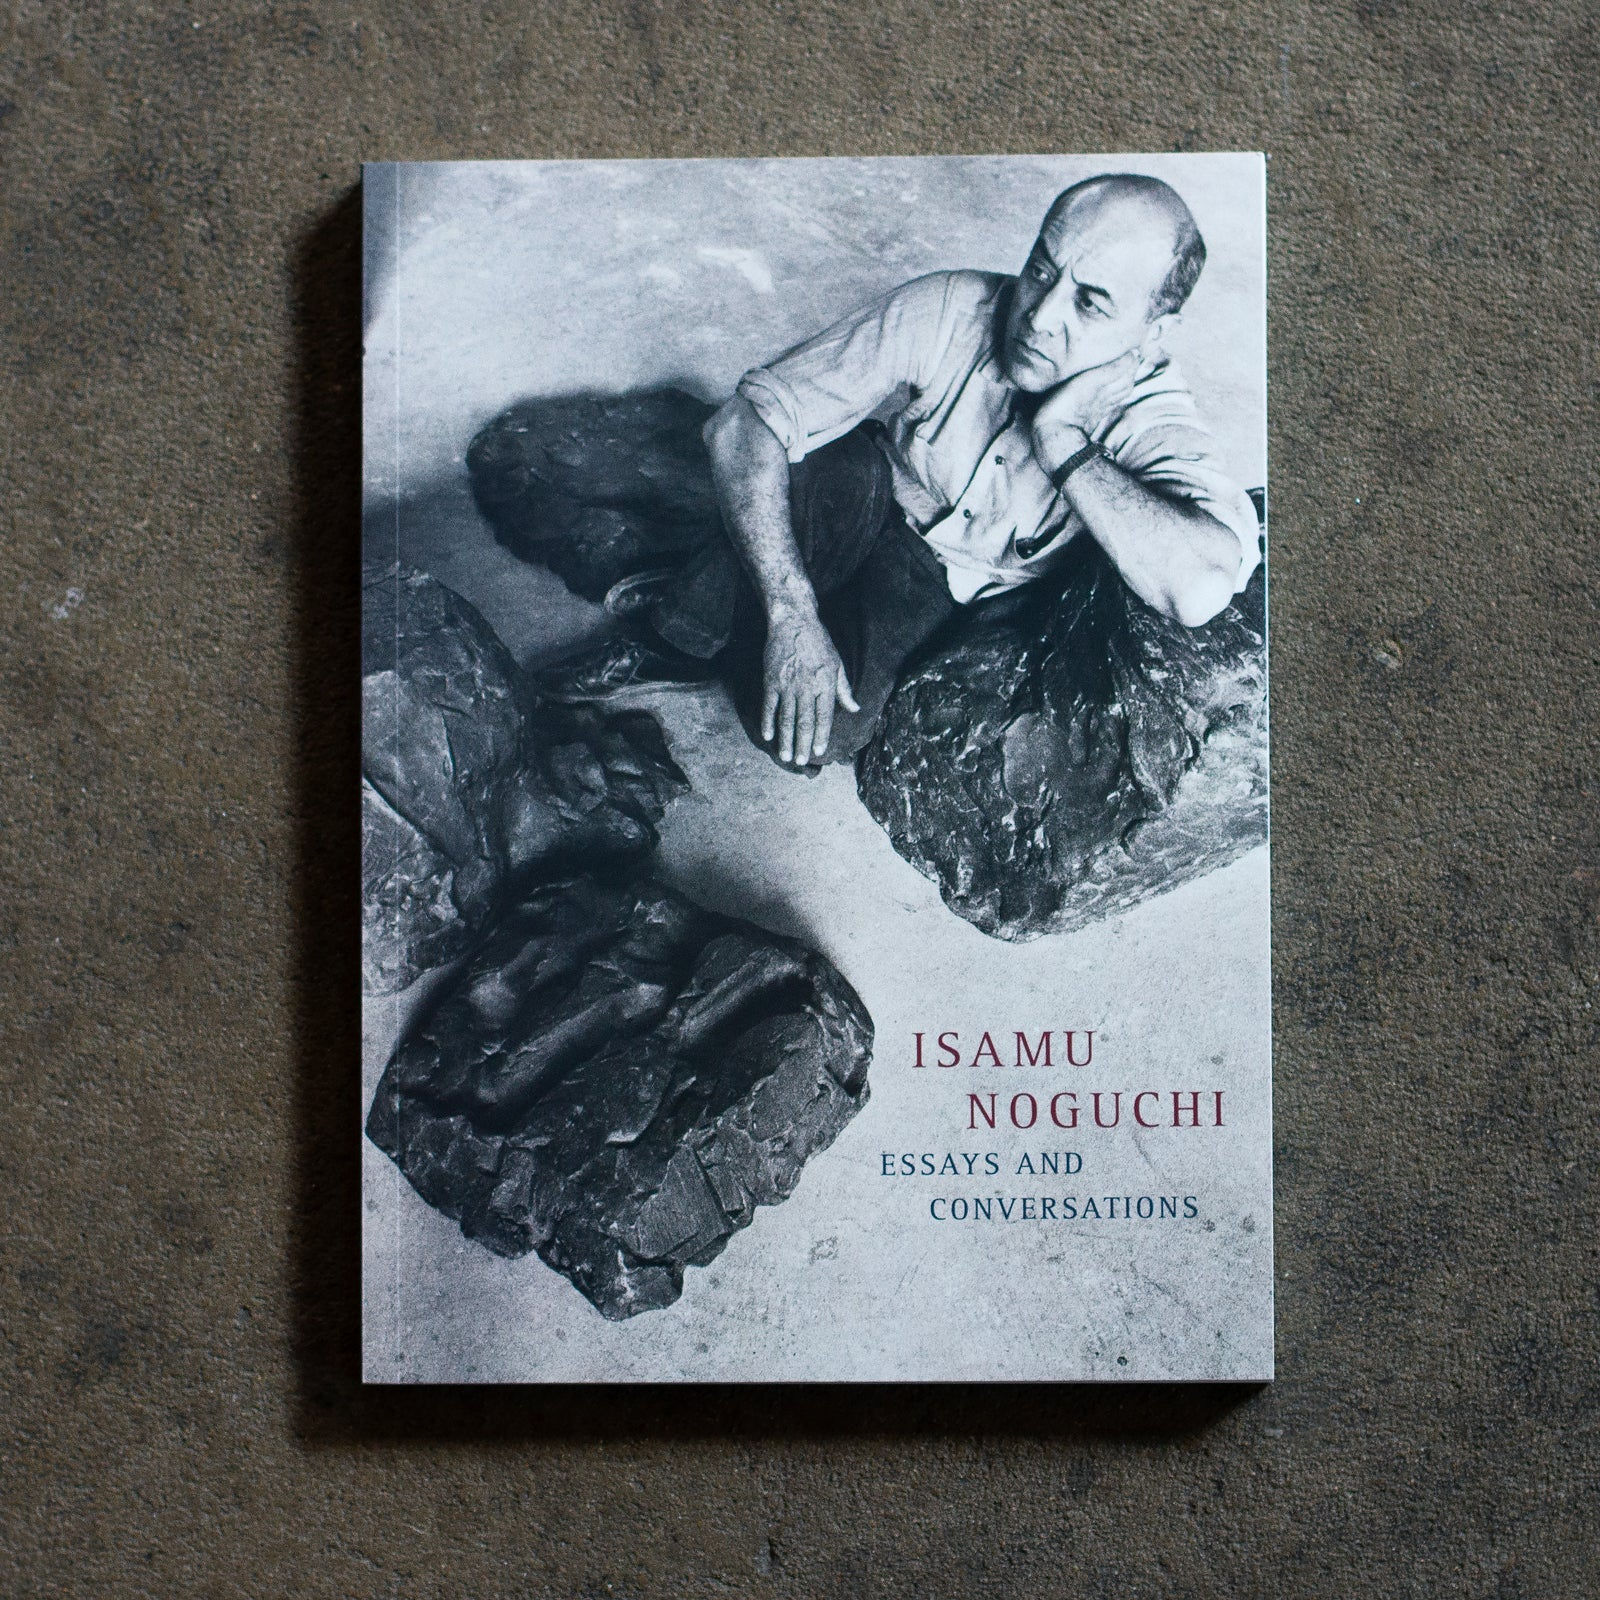 Isamu Noguchi: Essays and Conversations